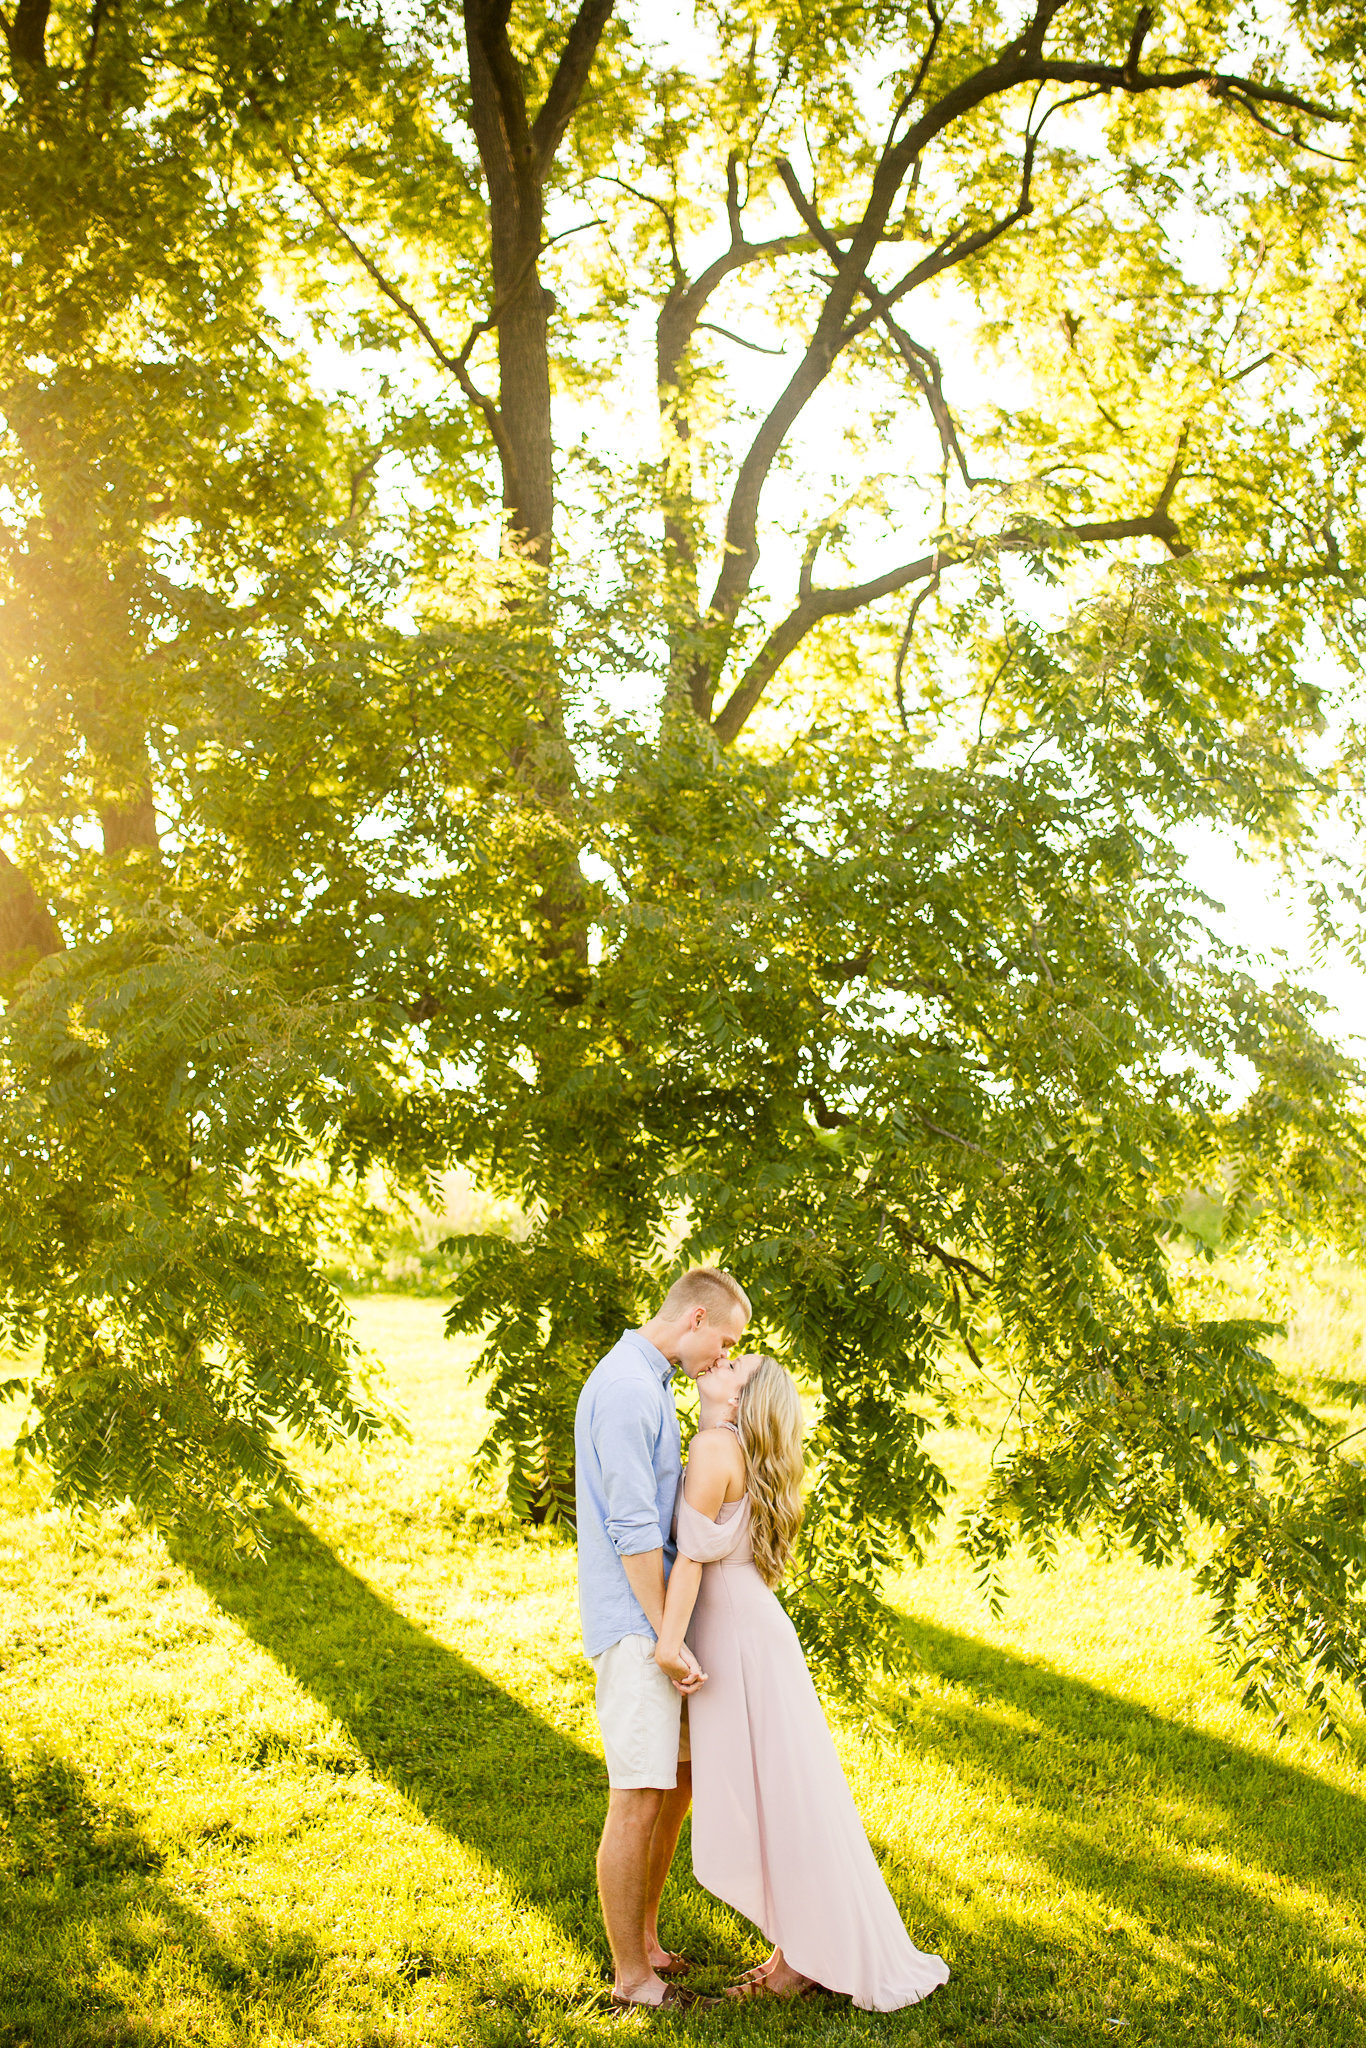 The Mariott Wedding | Anna and Bryan | Caitlin and Luke Photography.jpg-68